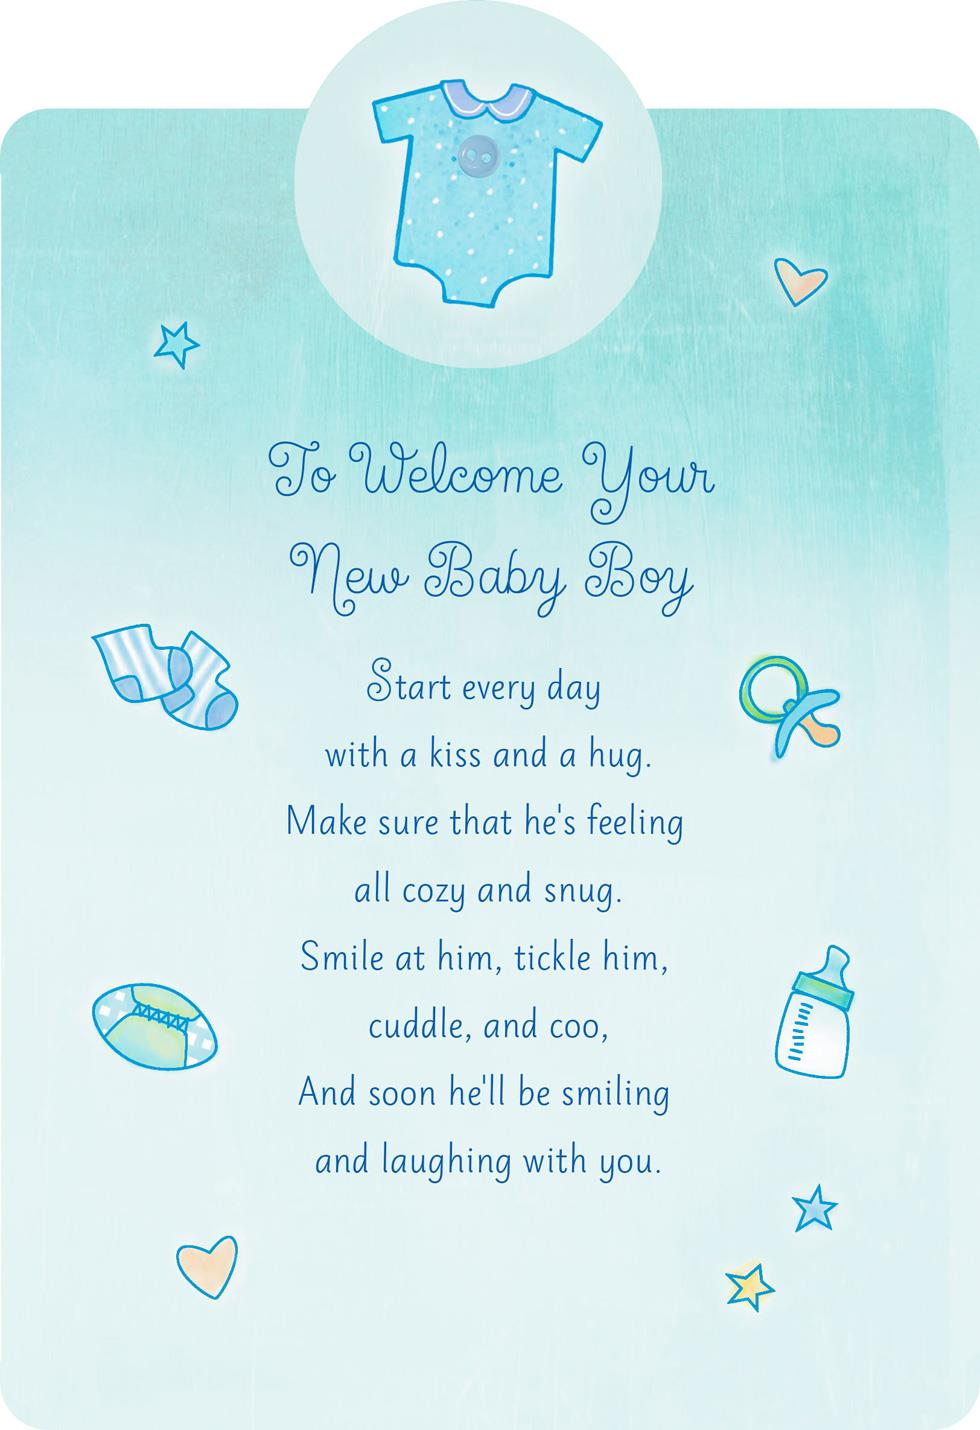 Birthday Card For Husband Welcome With A Kiss And Hug New Baby Boy Card - Greeting